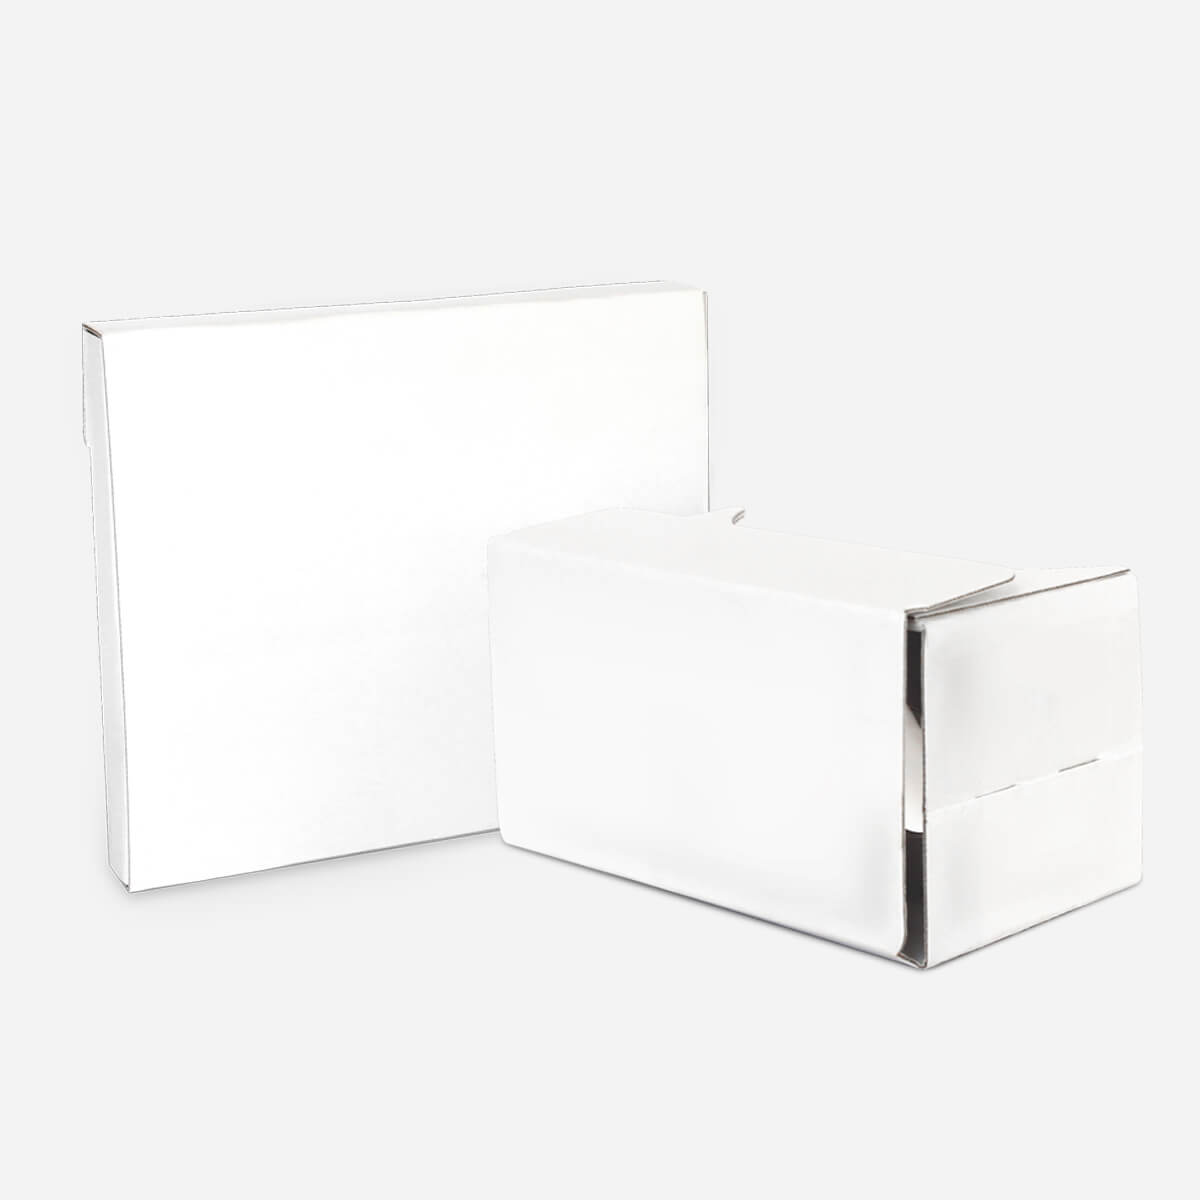 cardboard-neutral-box-with-stickers-05.jpg